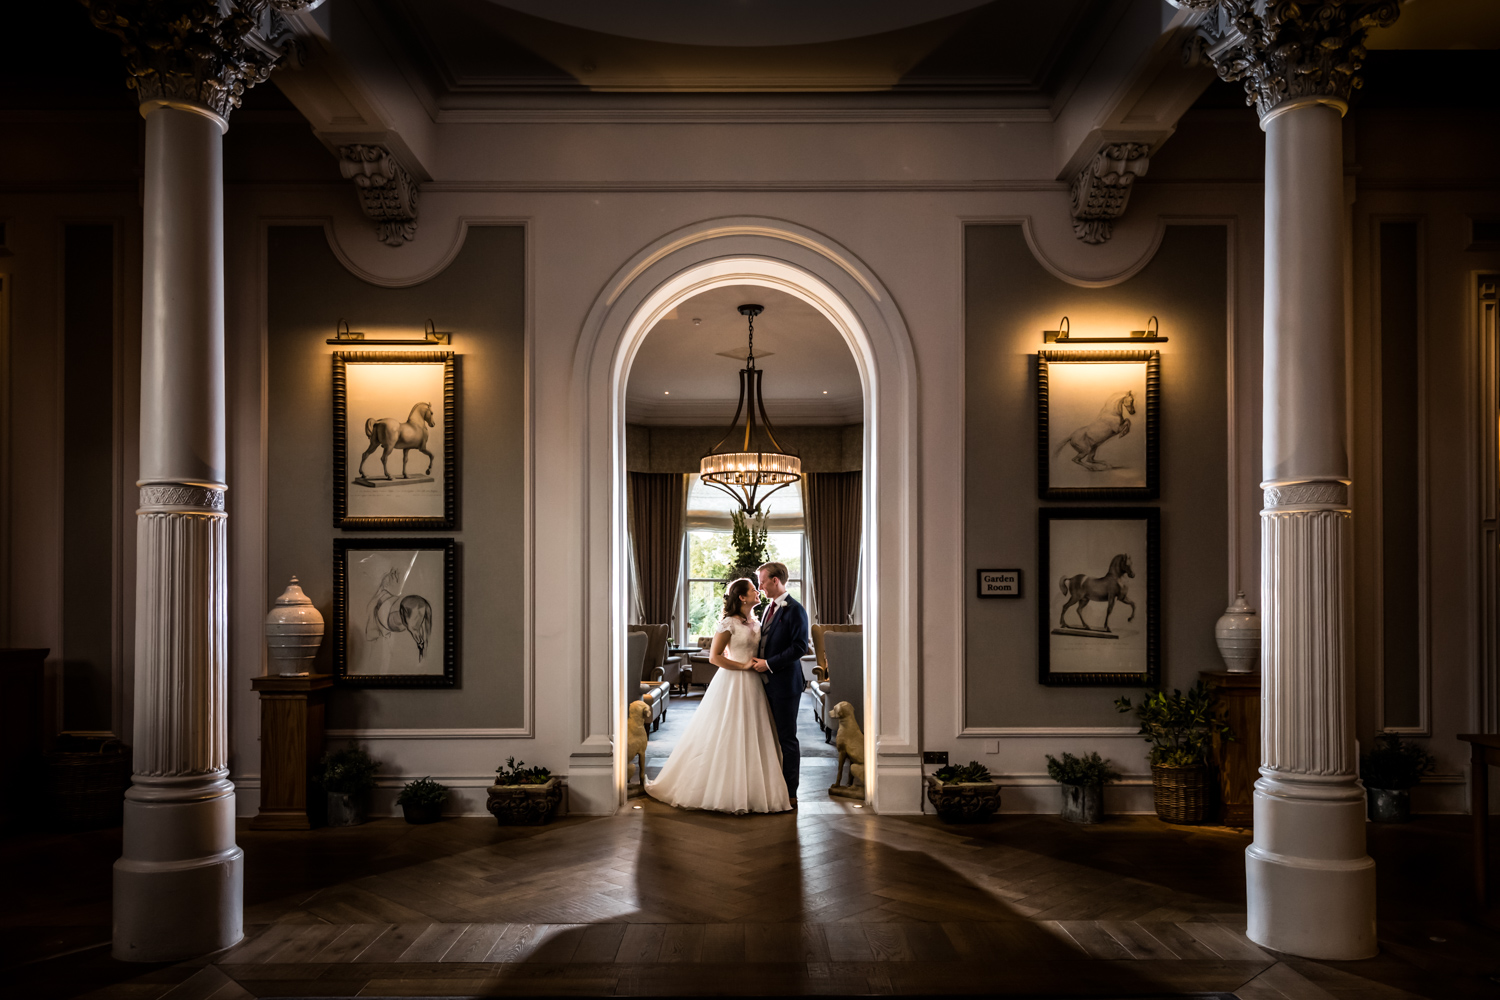 Principal Hotel York Wedding Photographer - Portrait of bride & groom